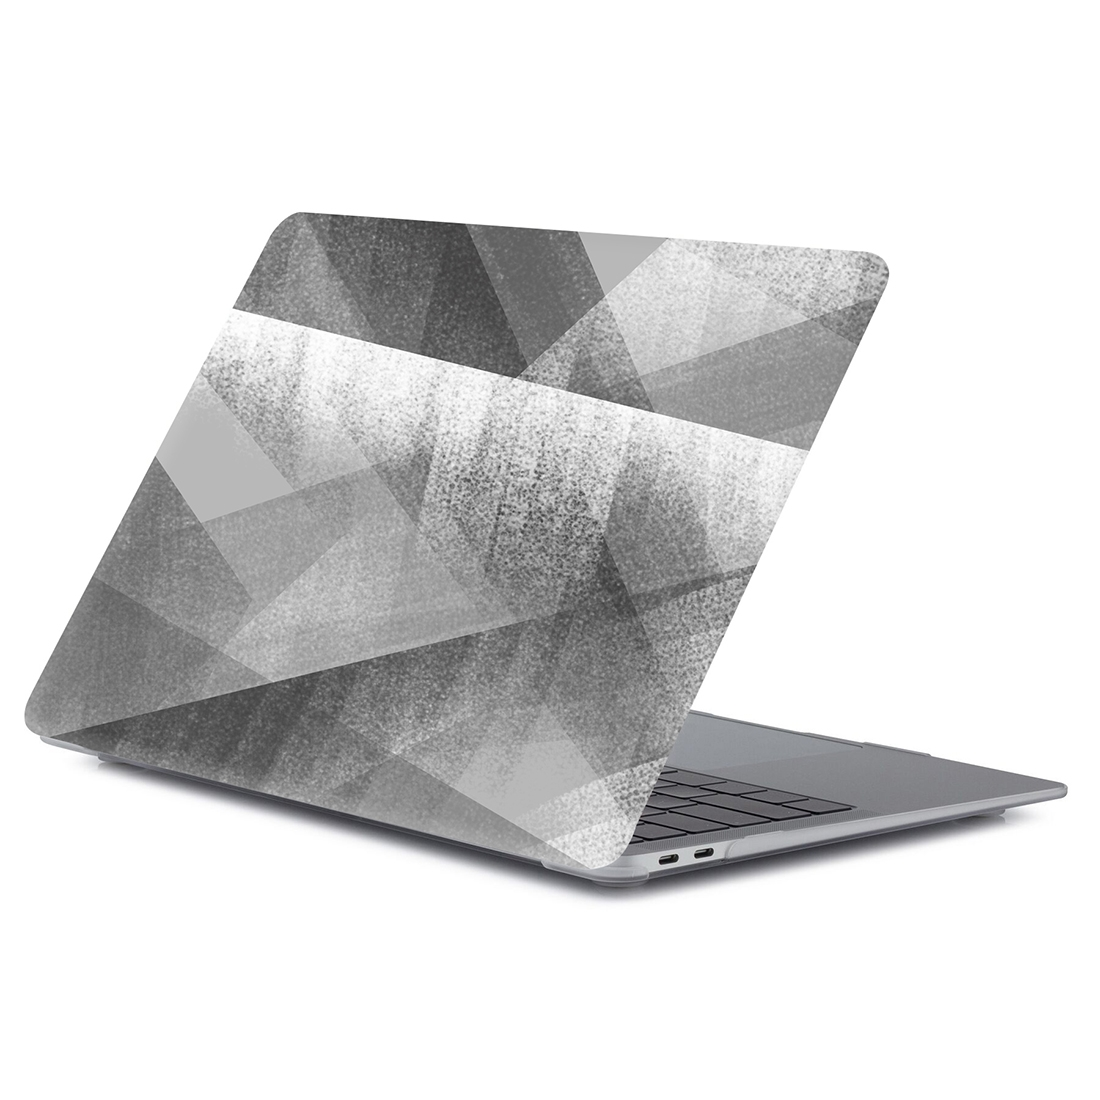 Printing Matte Laptop Protective Case for MacBook Air 11.6 inch A1465 (2012 - 2015) / A1370 (2010 - 2011) (RS-046)